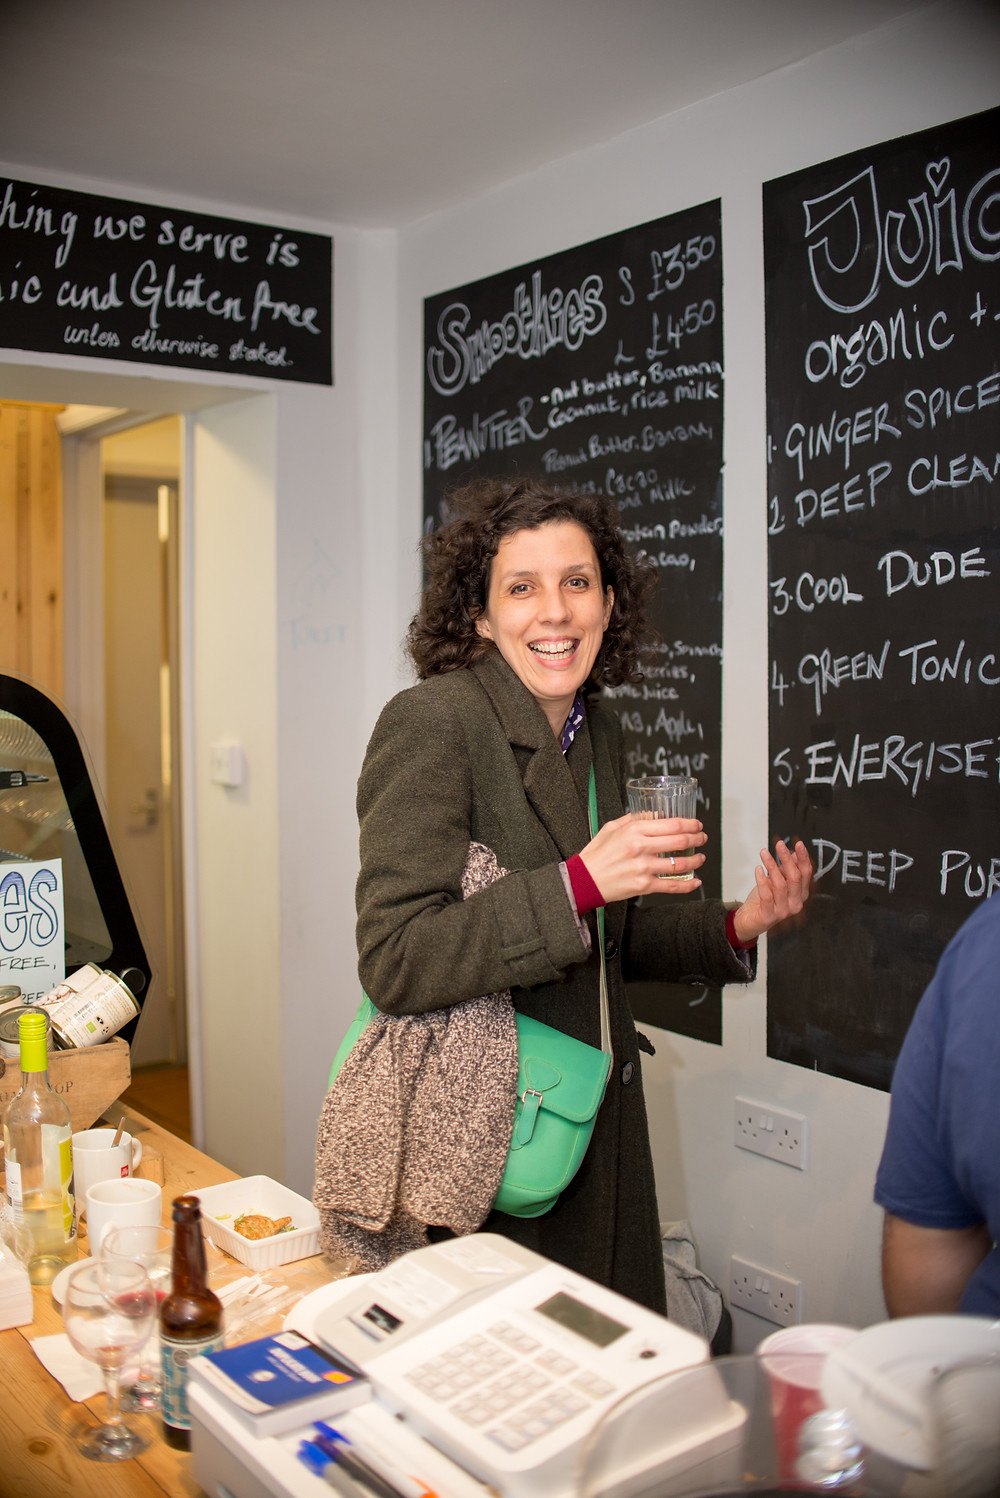 Smiling lady with drink at Cafe Gratitude during Rempah's party.